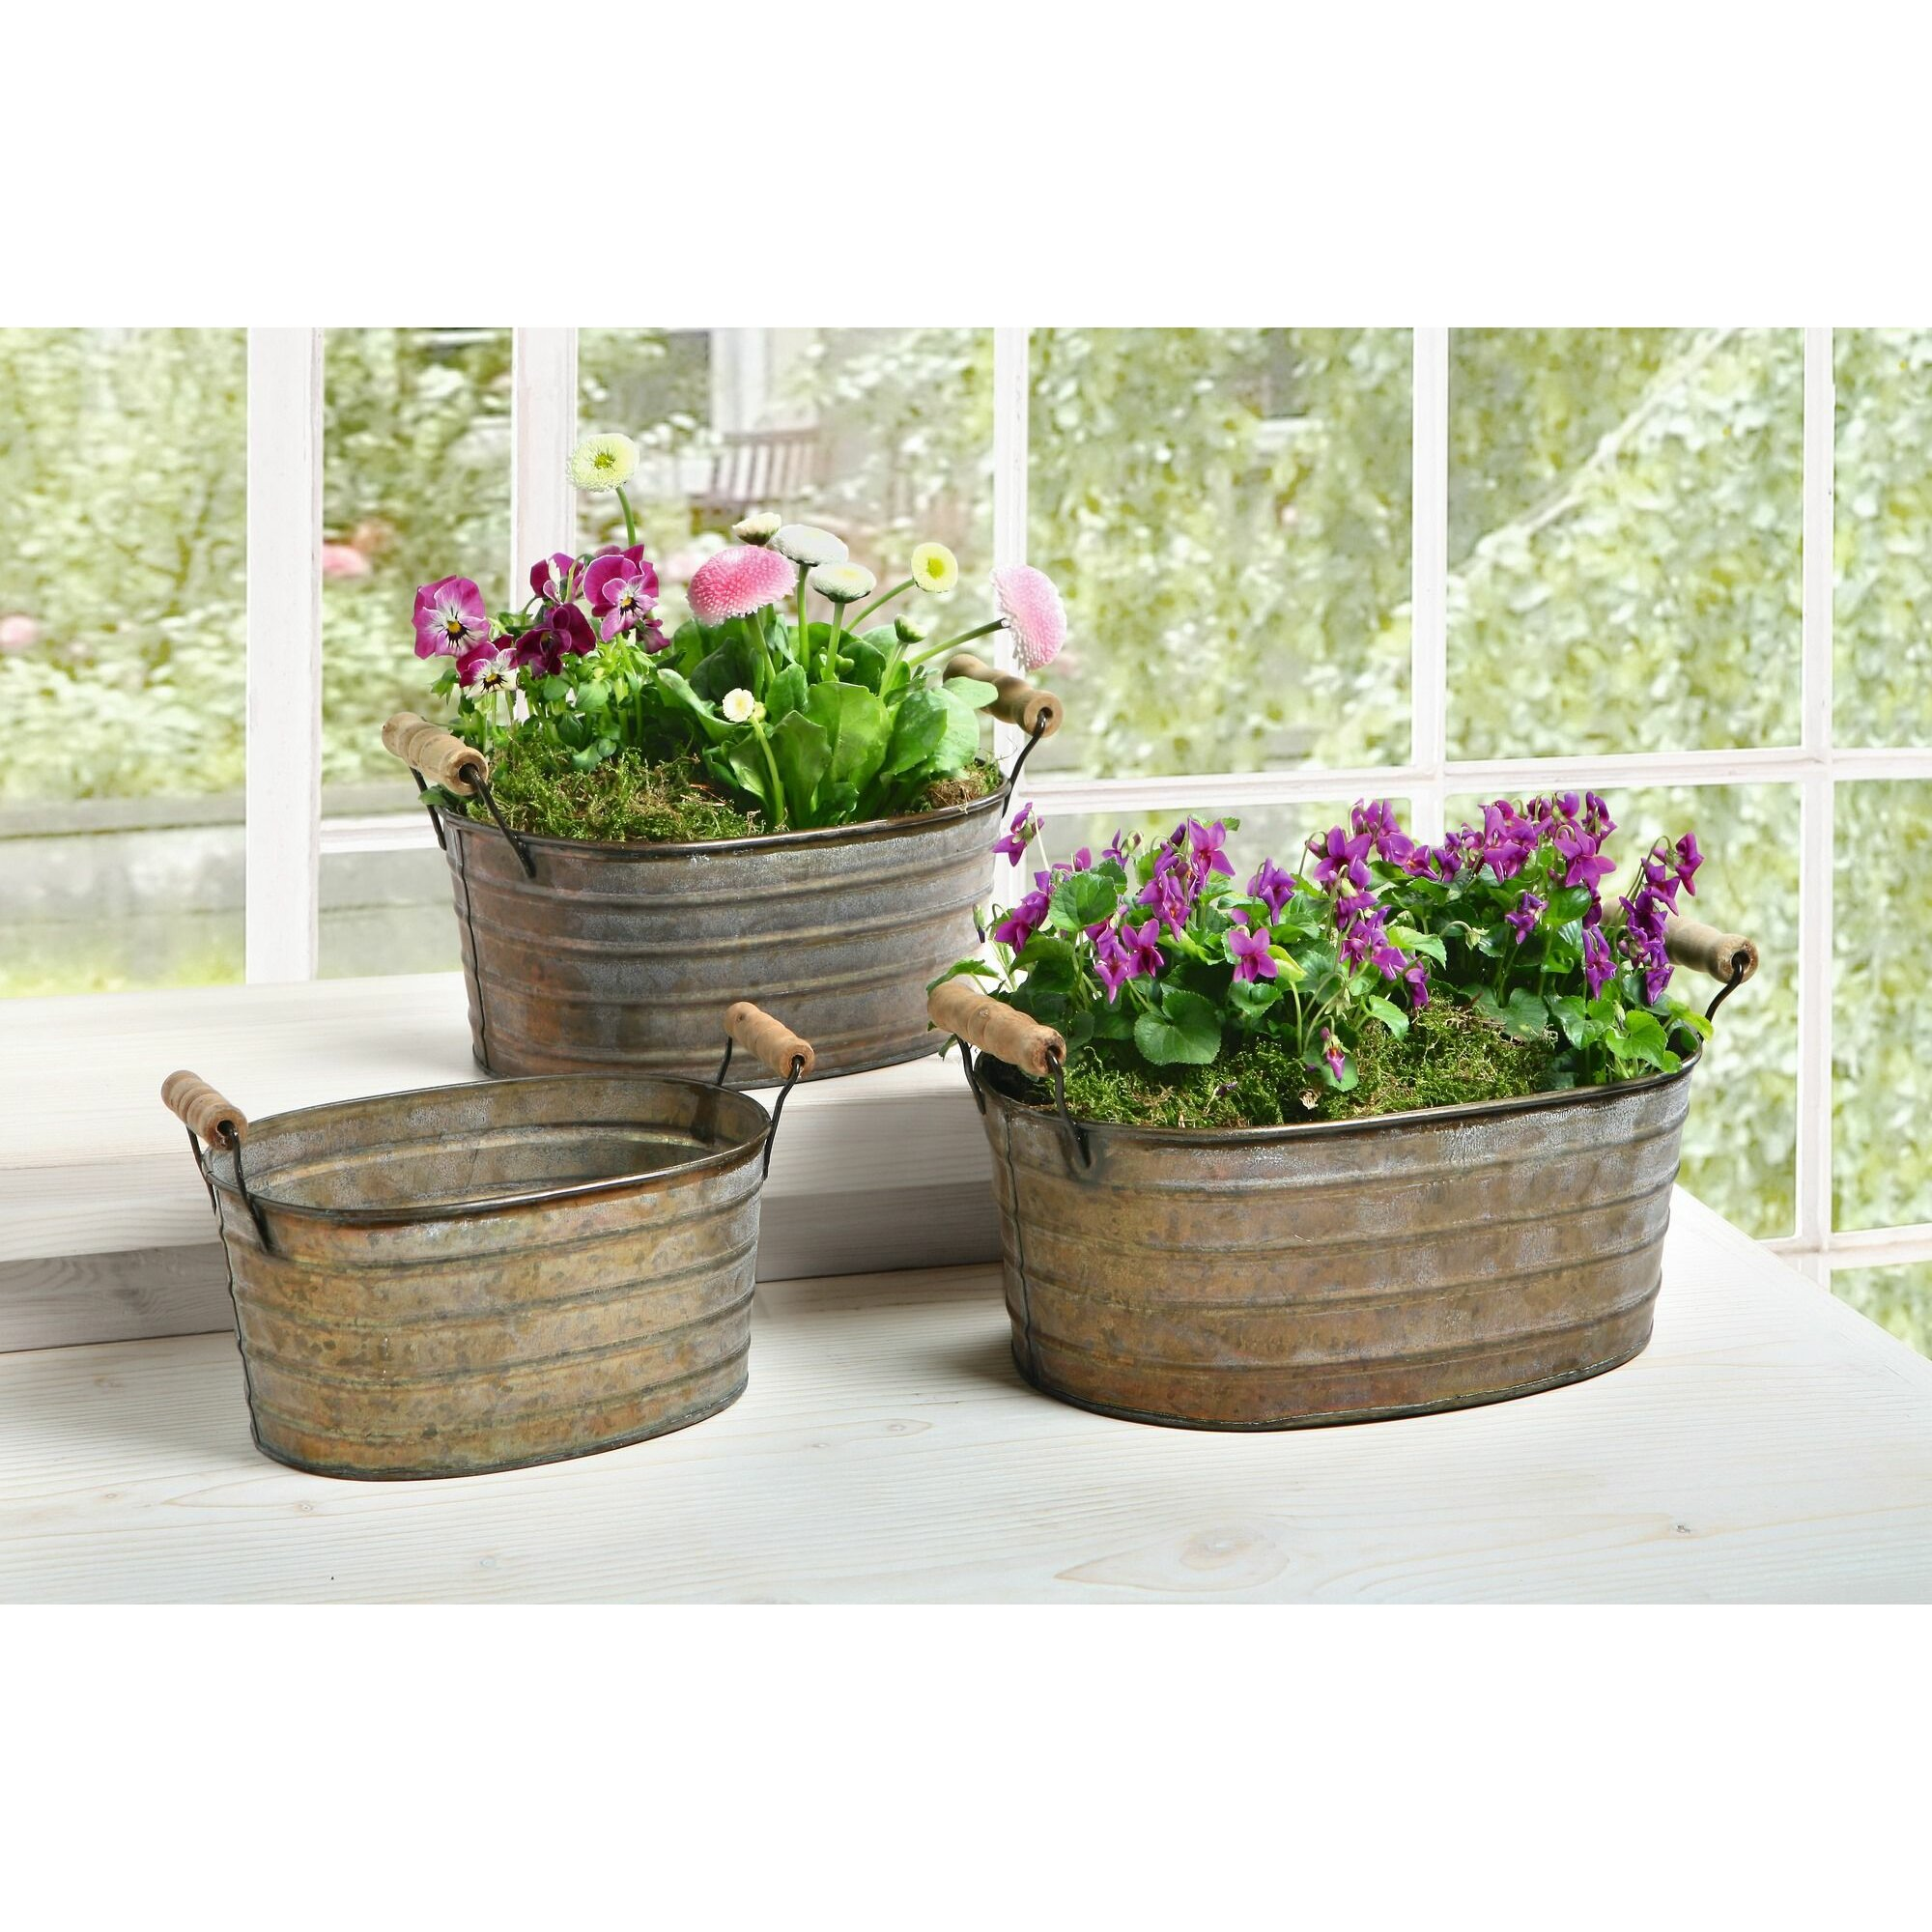 Piersurplus 3 piece oval tub planter set reviews for Oval garden tub